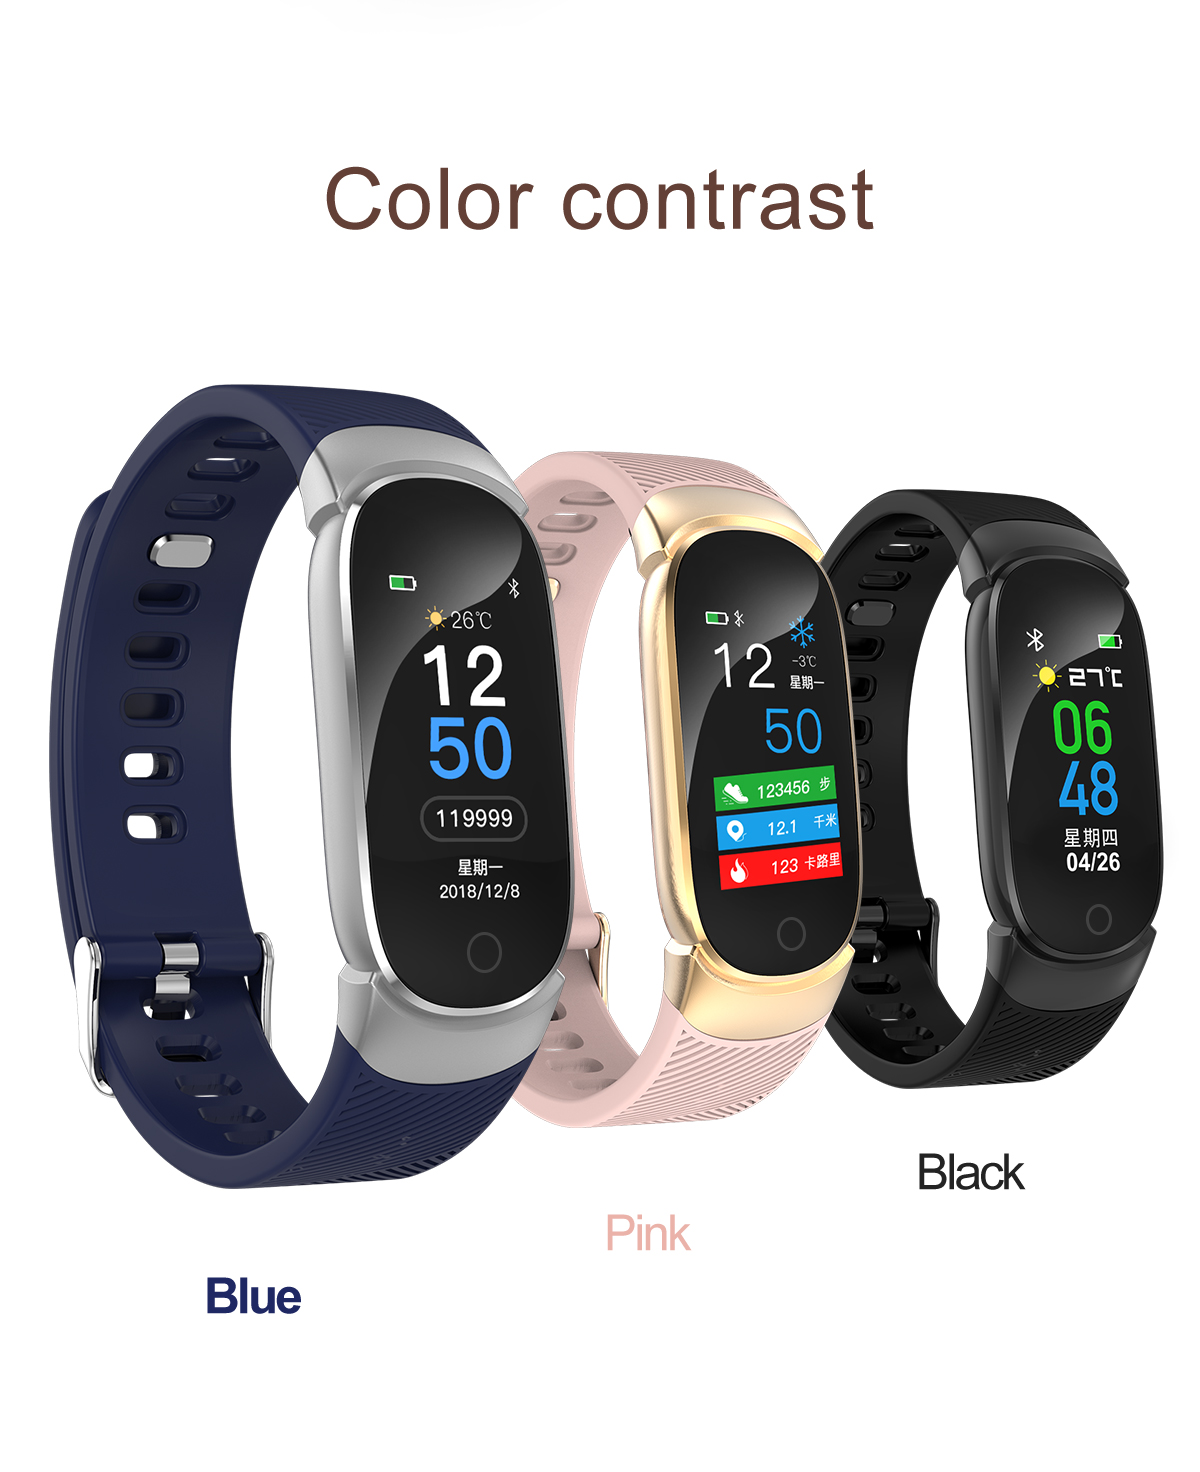 BC-07 Unisex Fitness Bracelet with IP67 Water Resistance